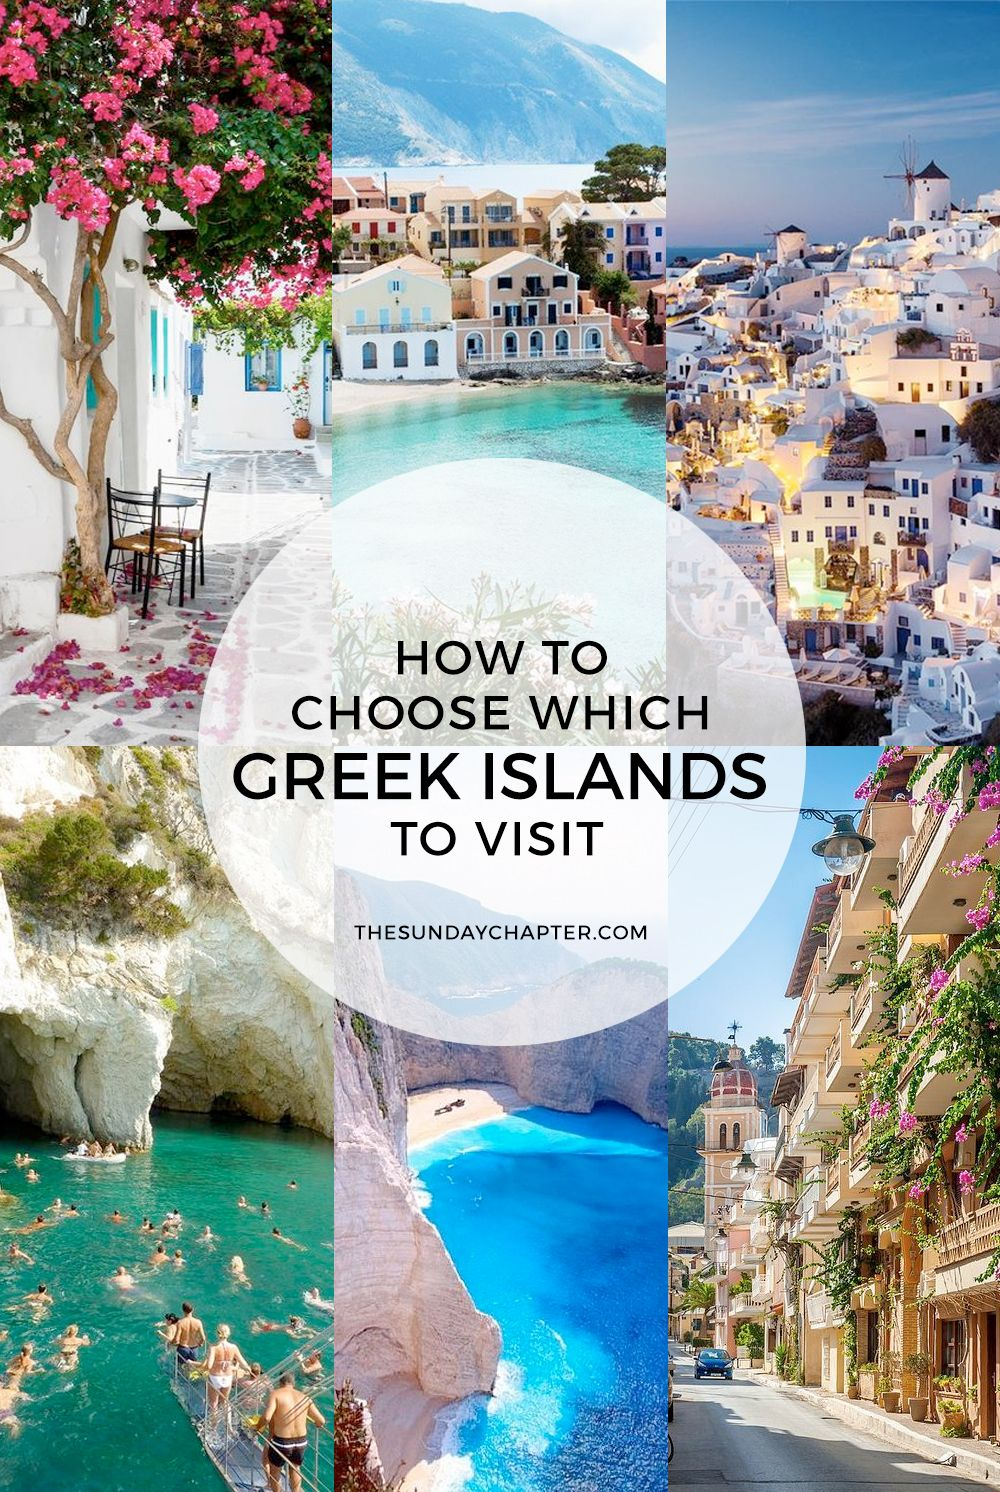 How To Choose The Style Of The: How To Choose Which Greek Islands To Visit